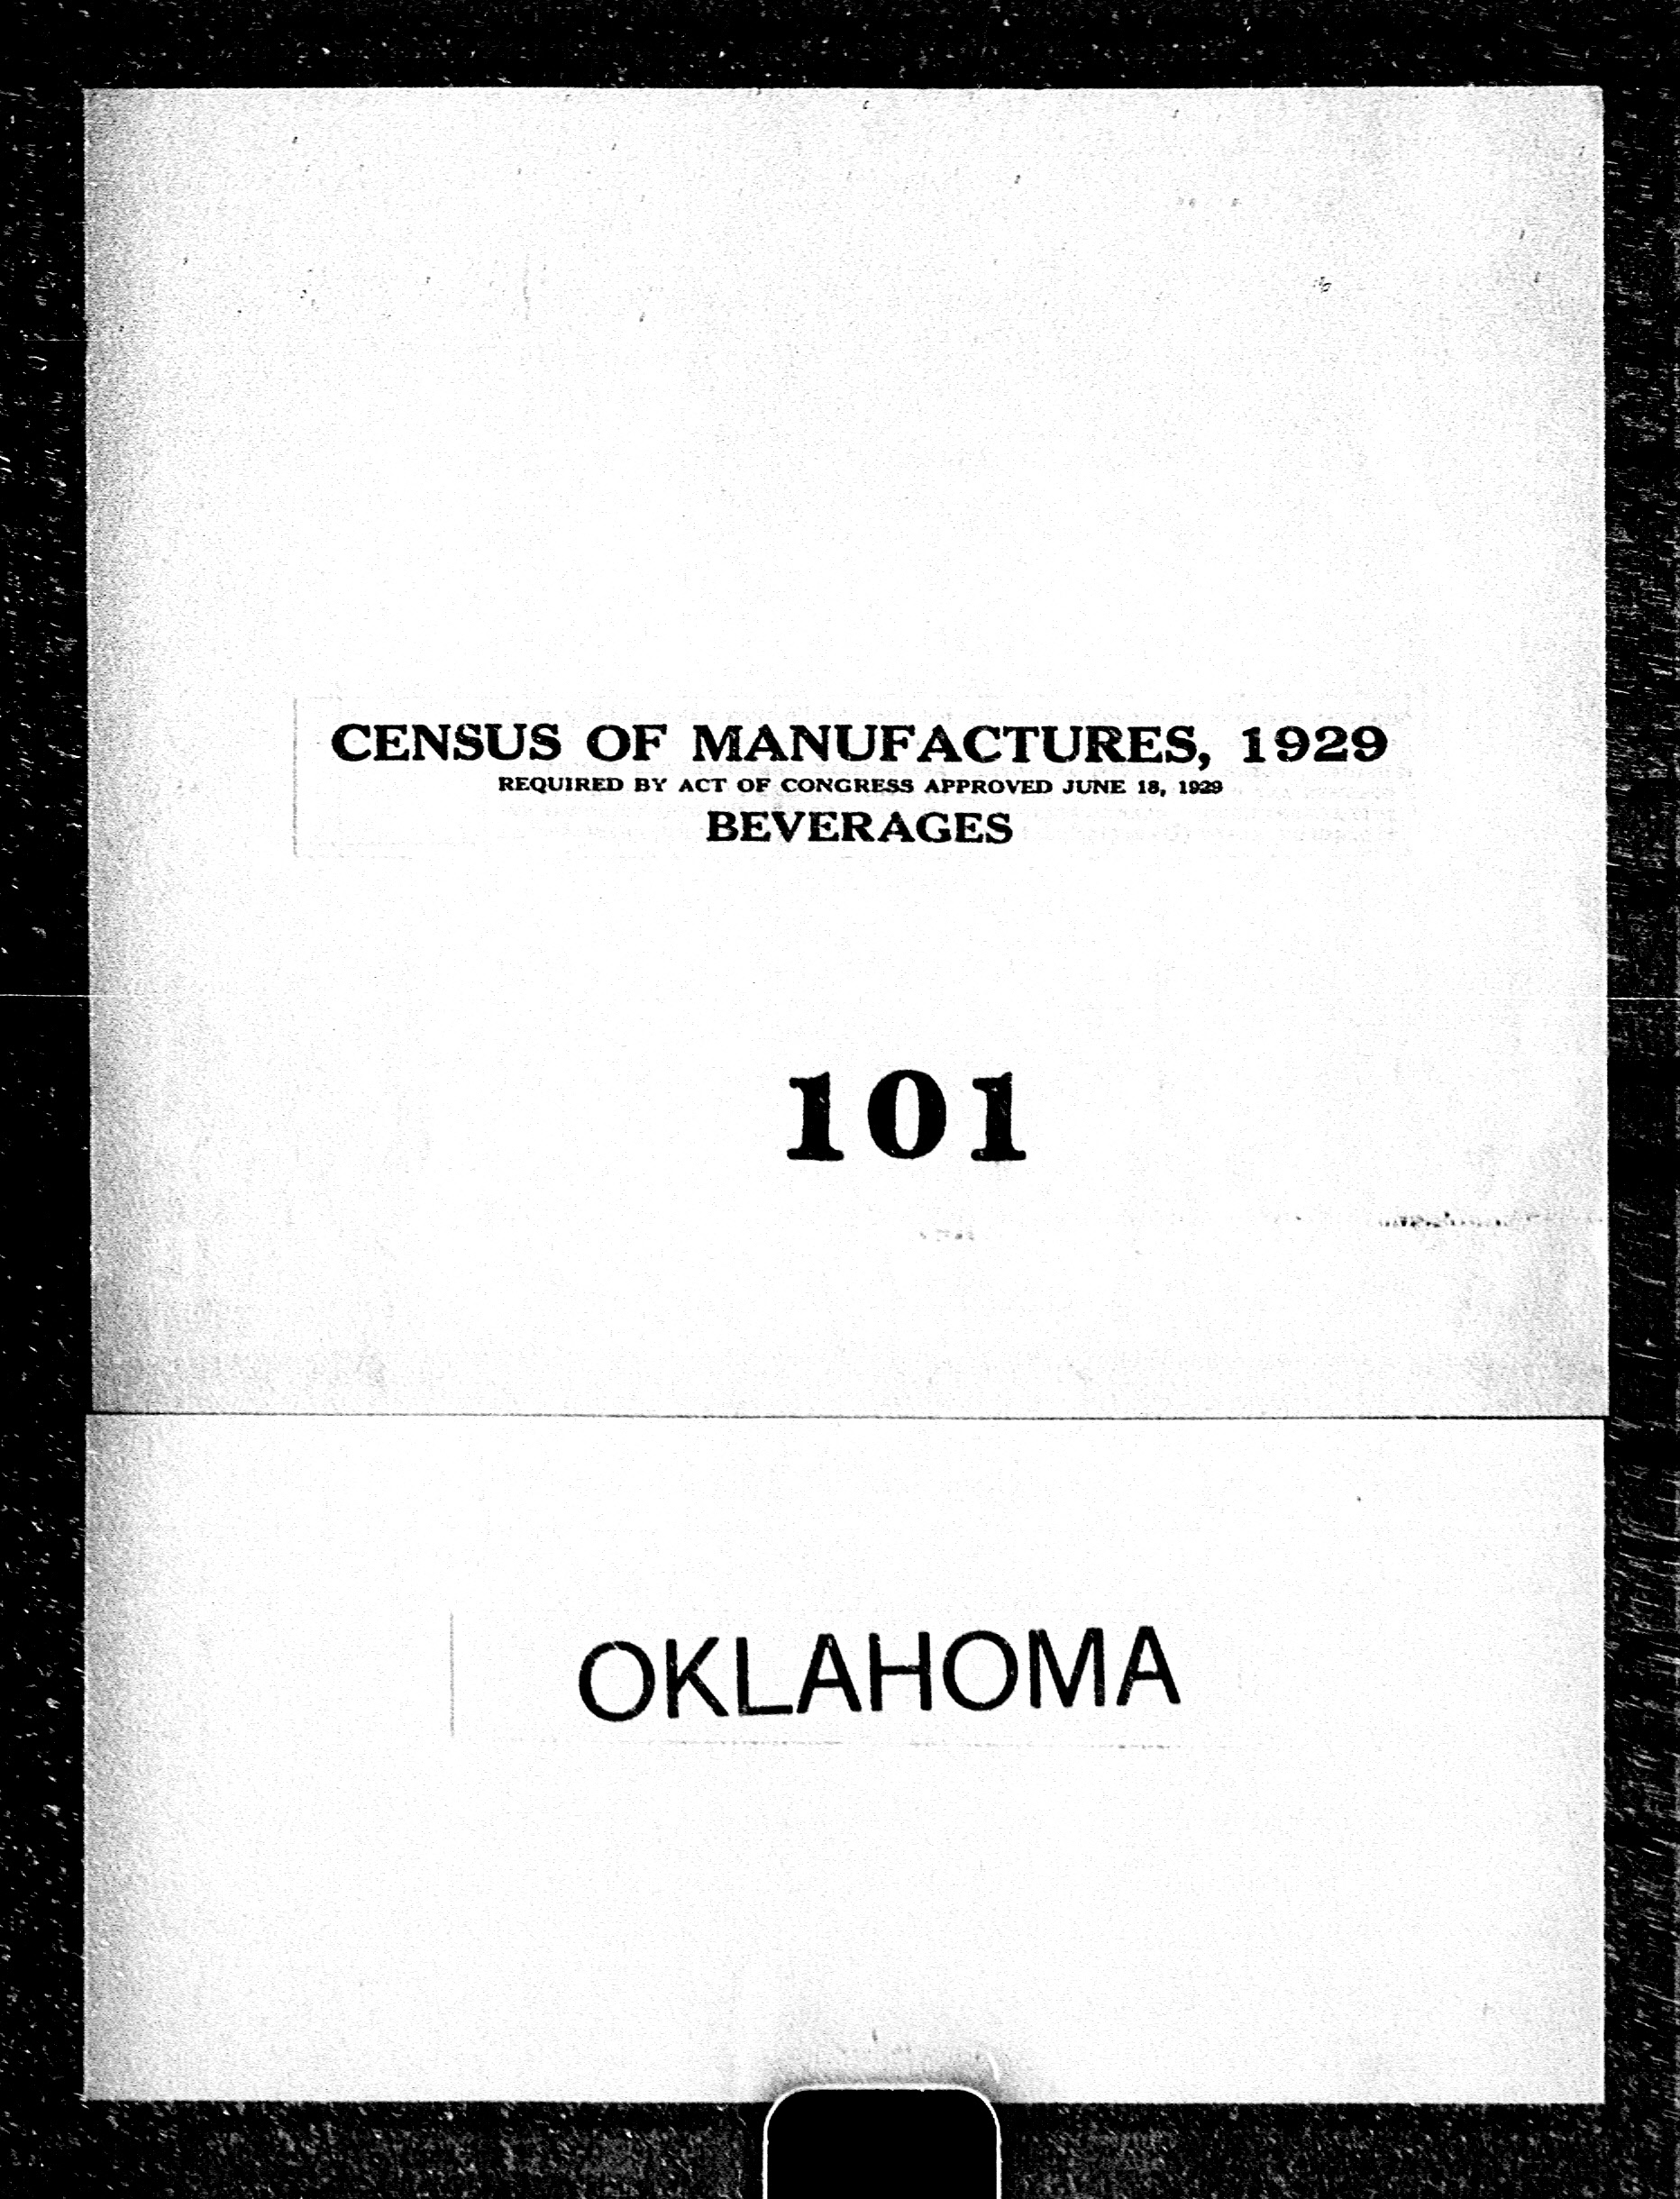 Oklahoma: Industry No. 101 - Beverages